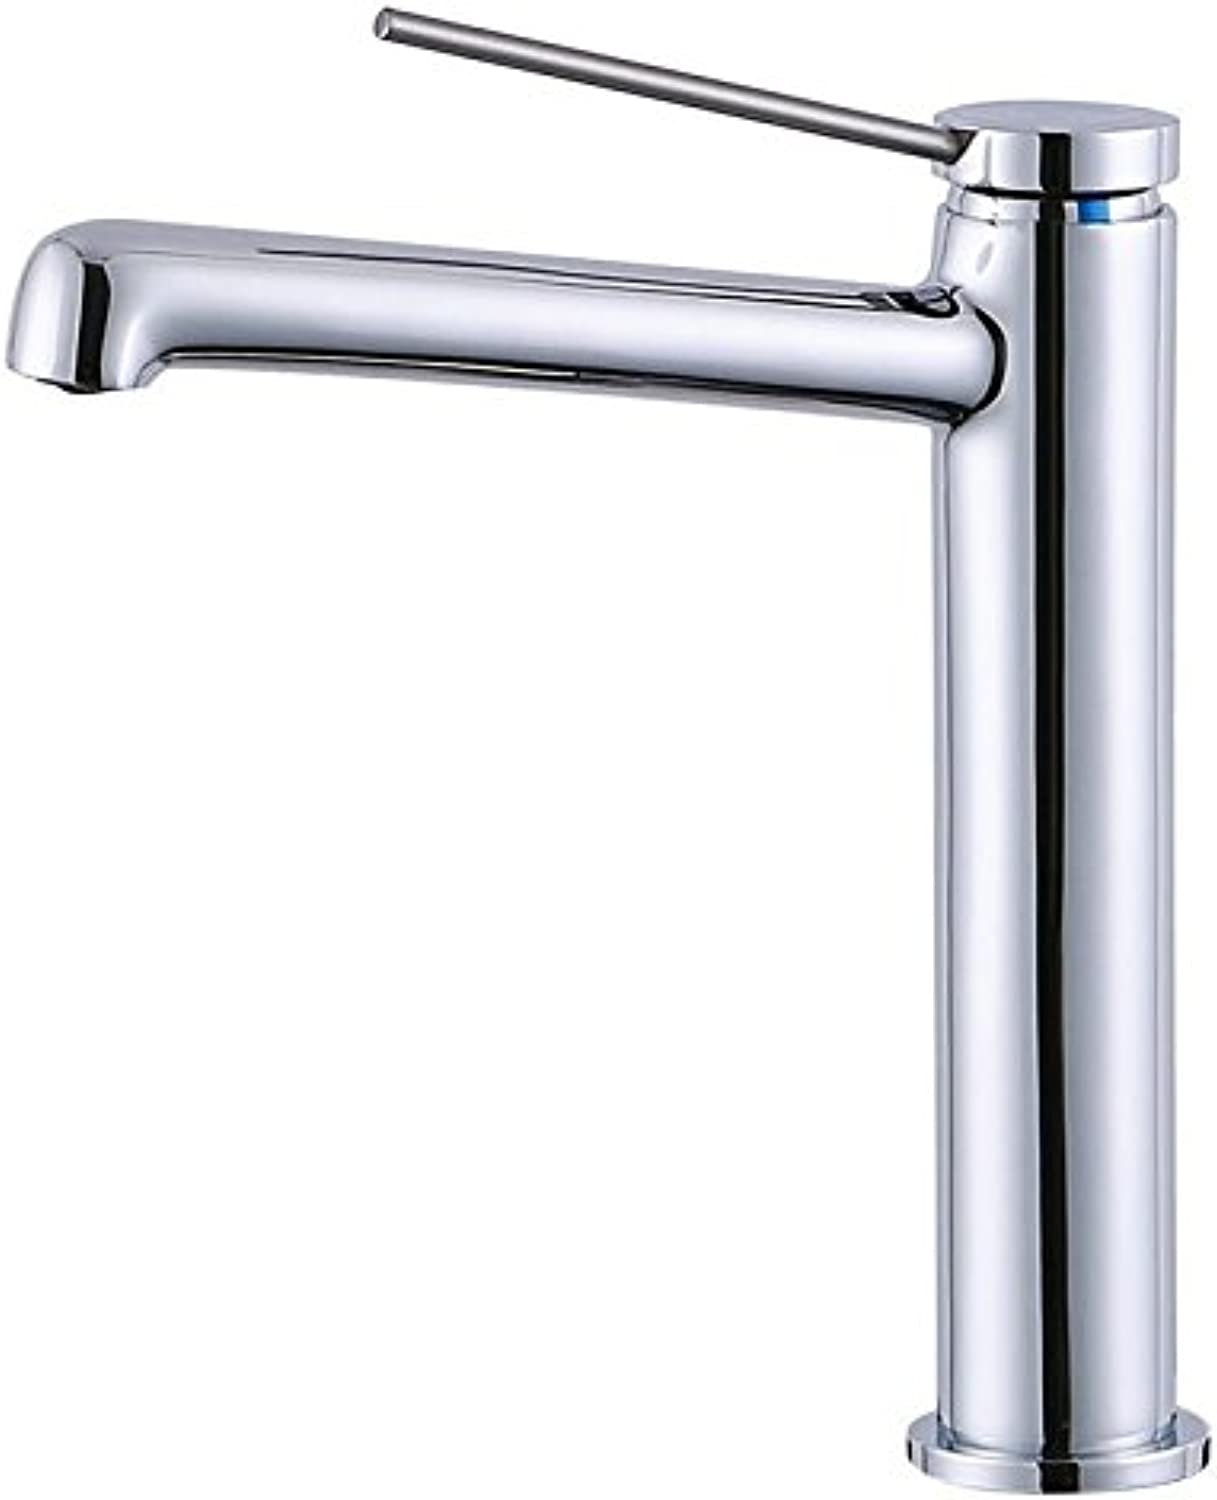 Hlluya Professional Sink Mixer Tap Kitchen Faucet Modern chrome faucet single handle basin mixer back-up mixing of hot and cold water bathroom sink Faucet